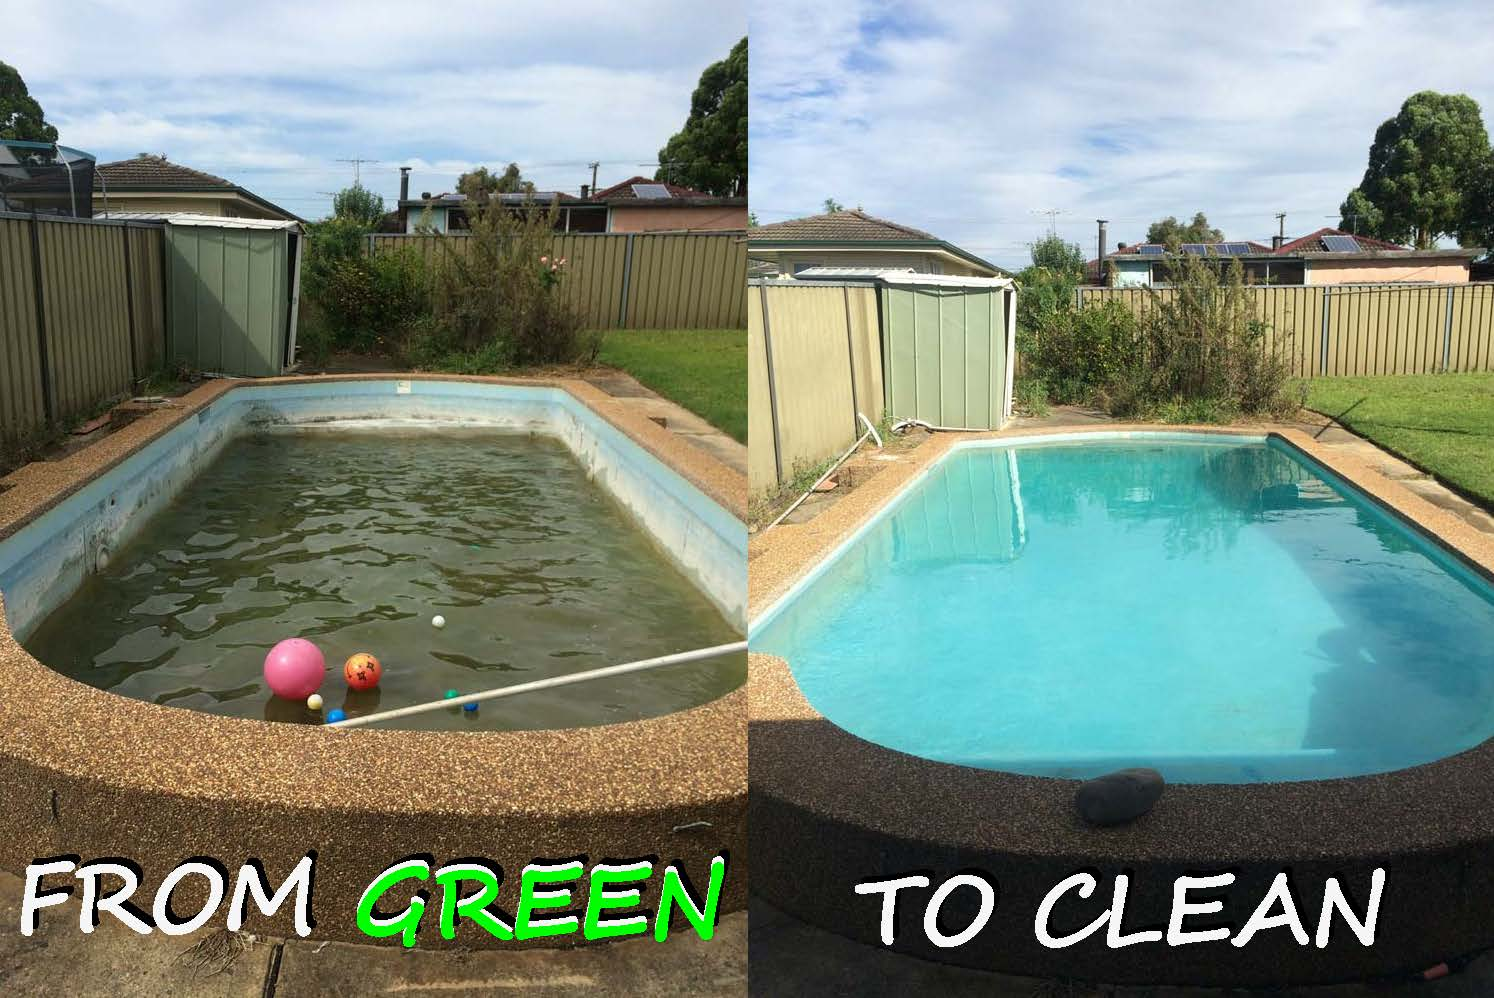 How to clean a neglected green swimming pool clean pools - How long after pool shock before swim ...